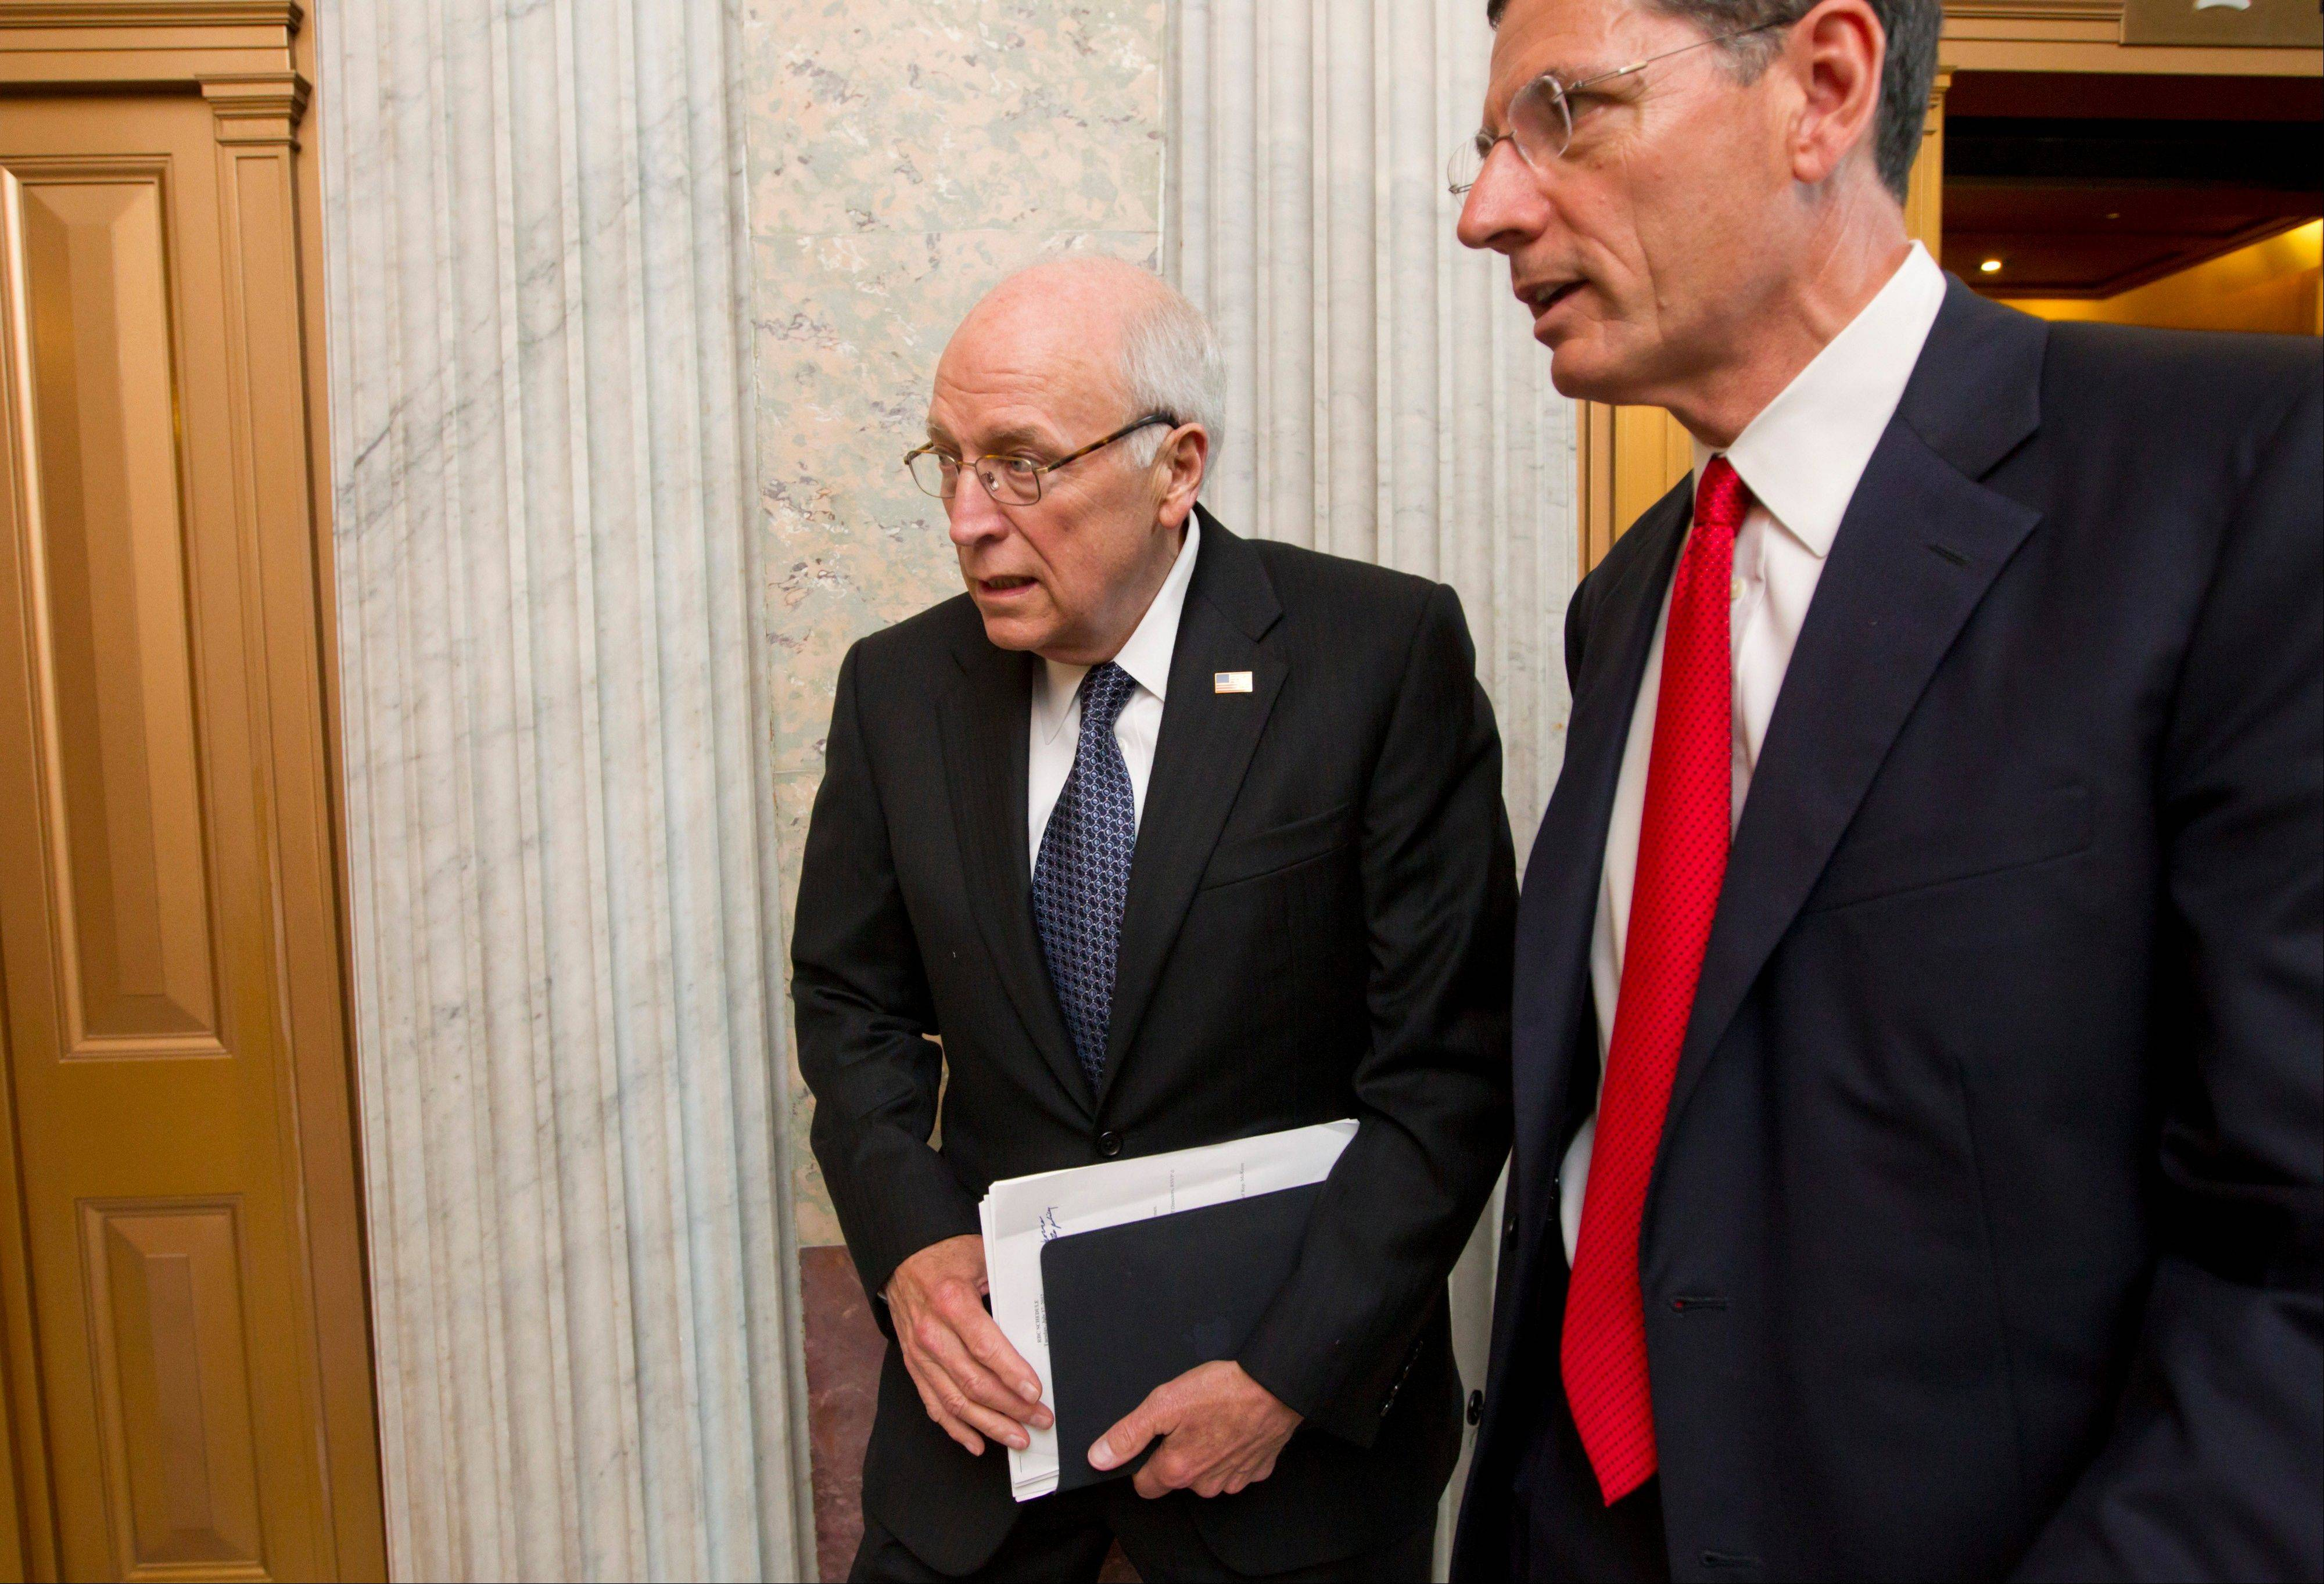 Former Vice President Dick Cheney, who also served five terms as Wyoming�s representative in the House, returns to the Capitol to meet with Senate Republican leaders at a political strategy luncheon in Washington Tuesday. He is accompanied by Wyoming Sen. John Barrasso, the Republican Policy Committee chairman.